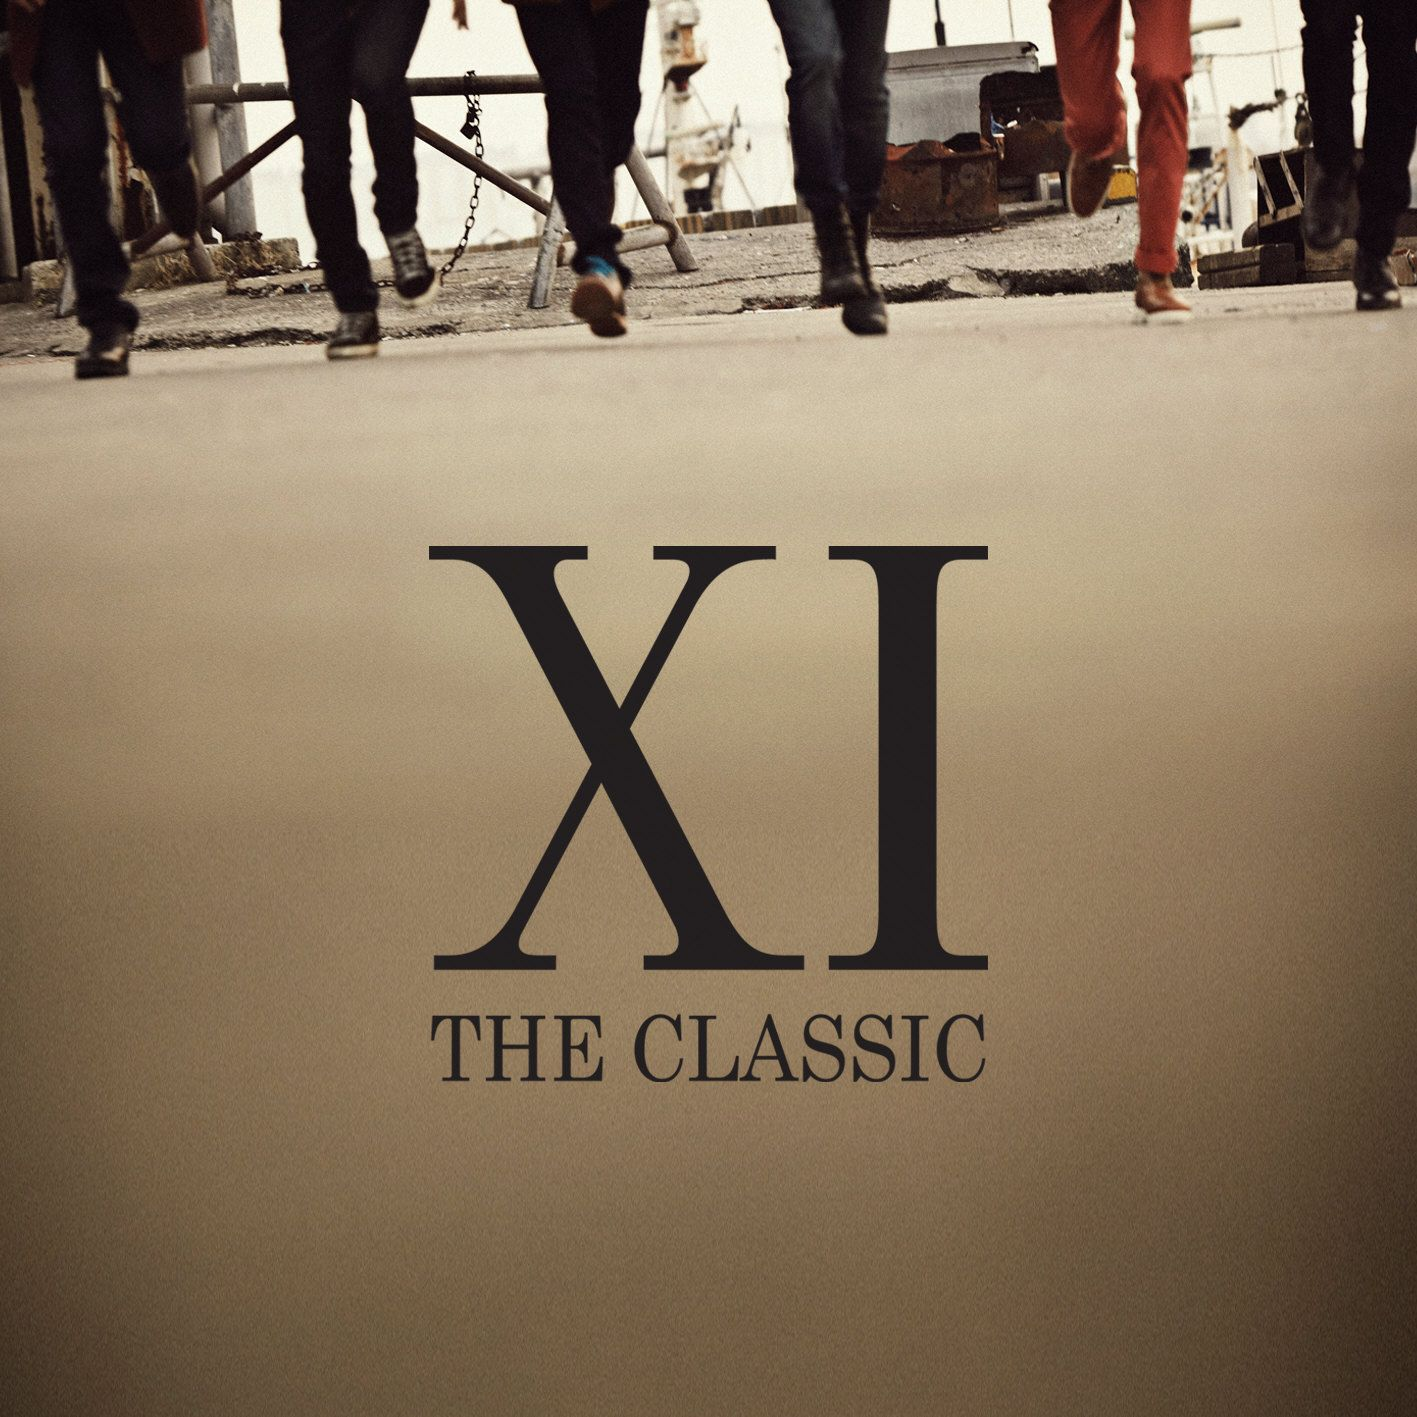 [Album] Shinhwa - THE CLASSIC [VOL. 11]